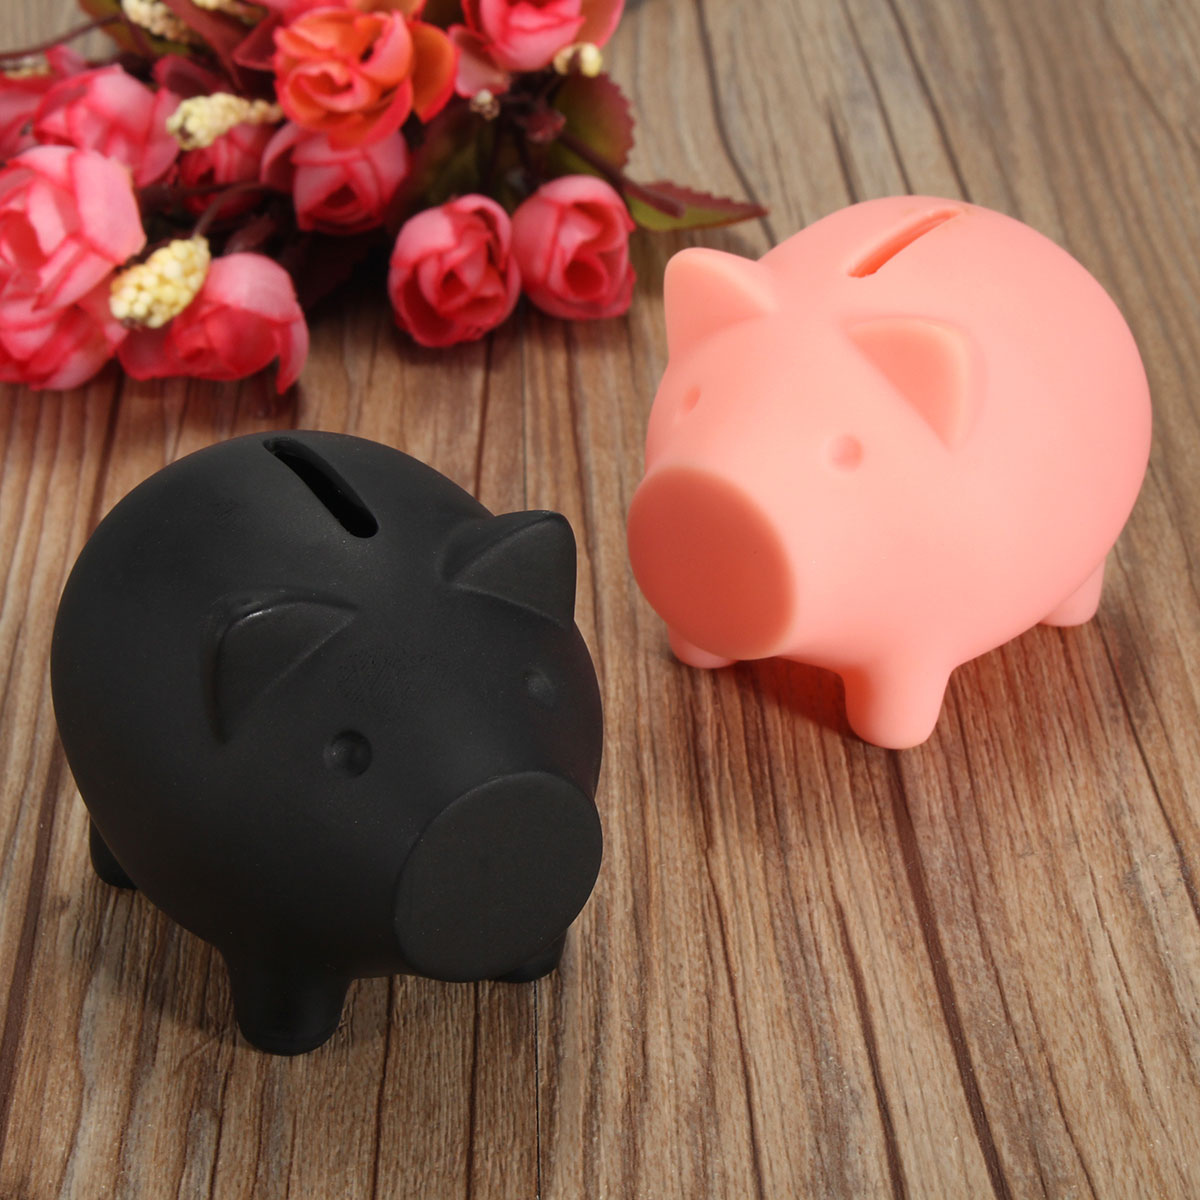 Cheap Piggy Banks For Sale Plastic Piggy Banks Diy Bottle Caps Money Coins Collection